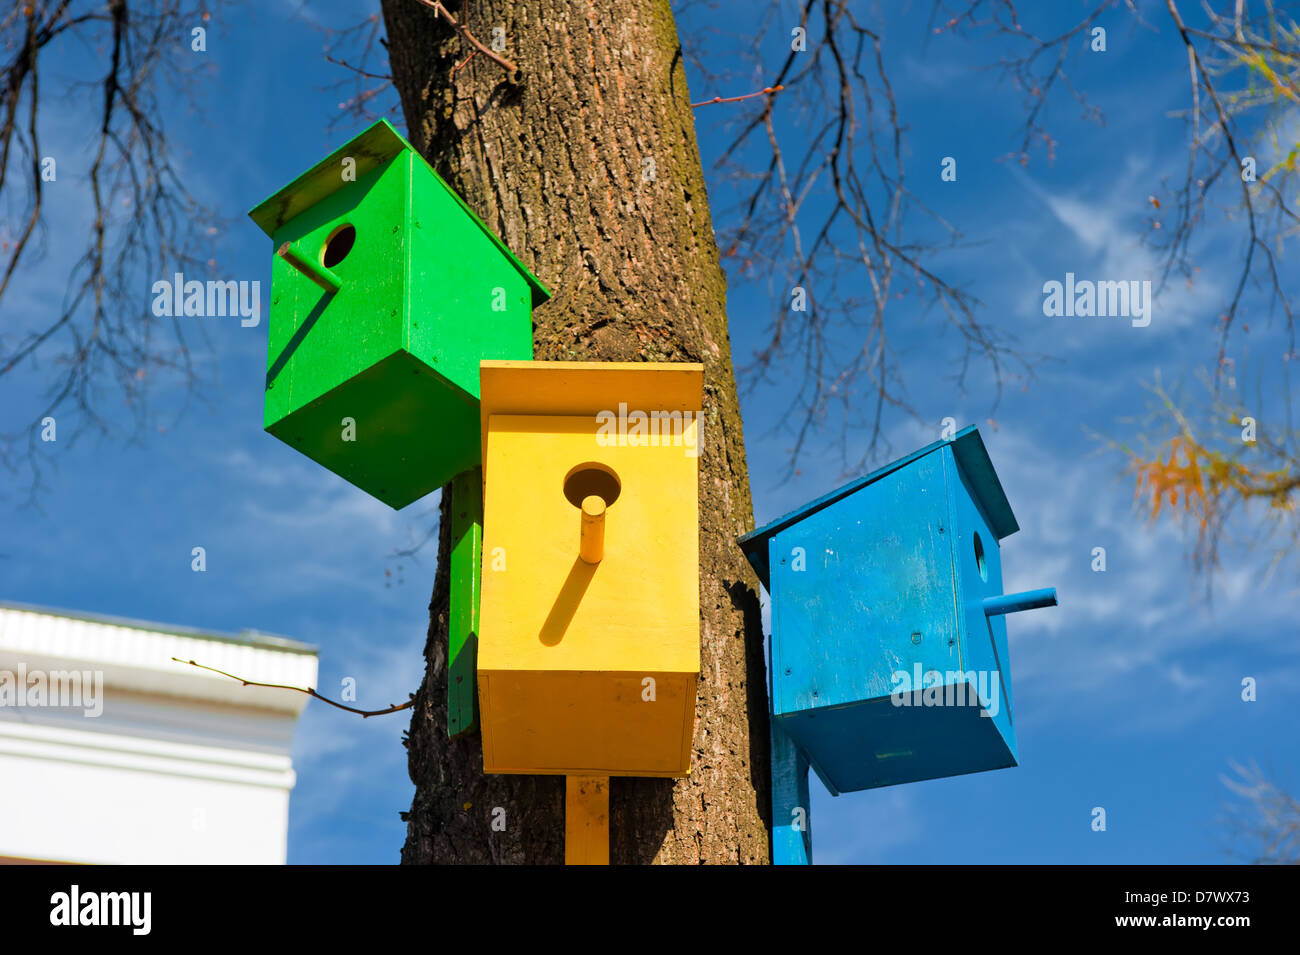 Three colorful birdhouse attached to a tree against the sky - Stock Image